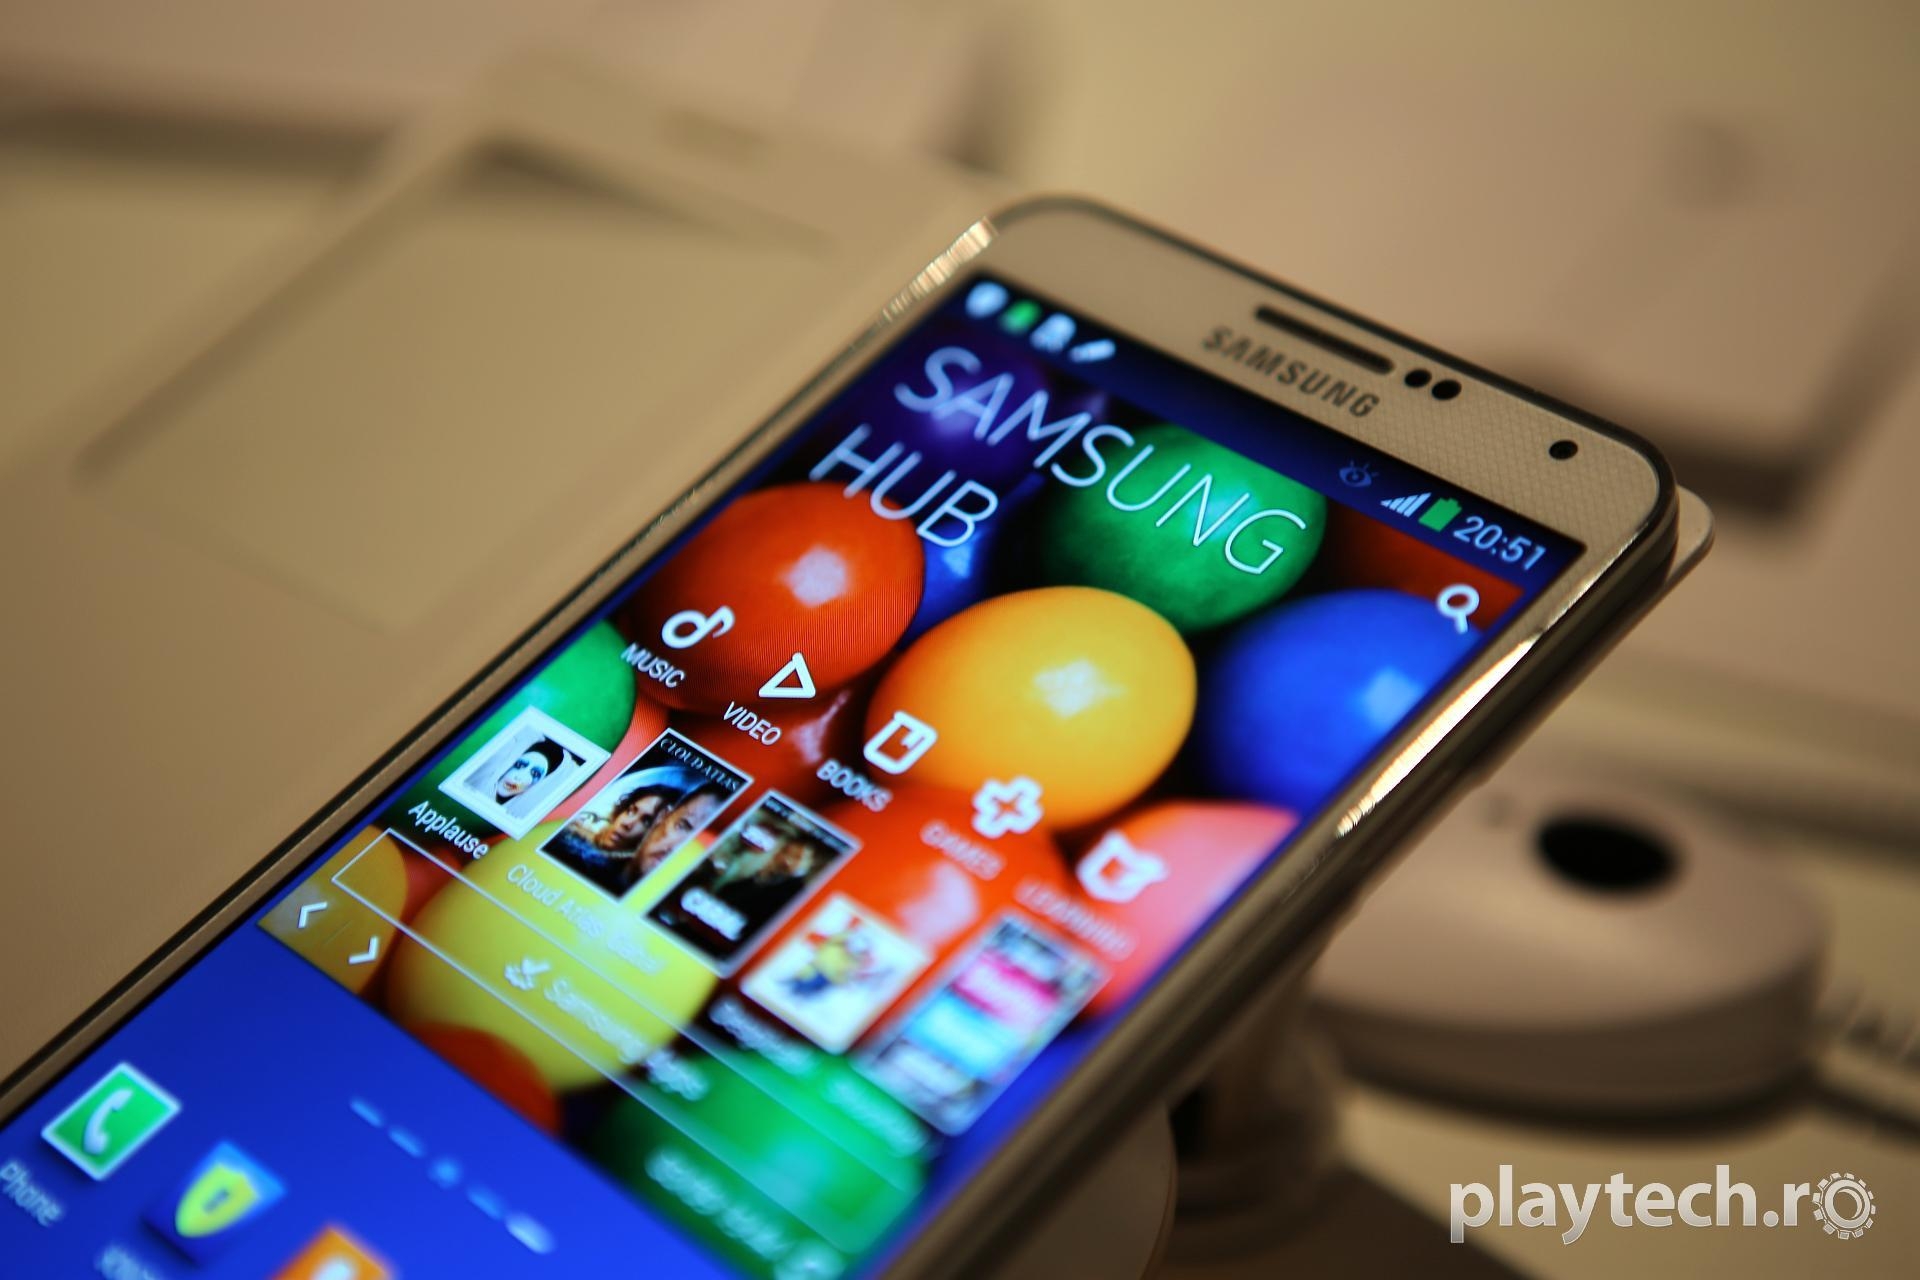 IFA 2013: Samsung Galaxy Note 3 Hands-On